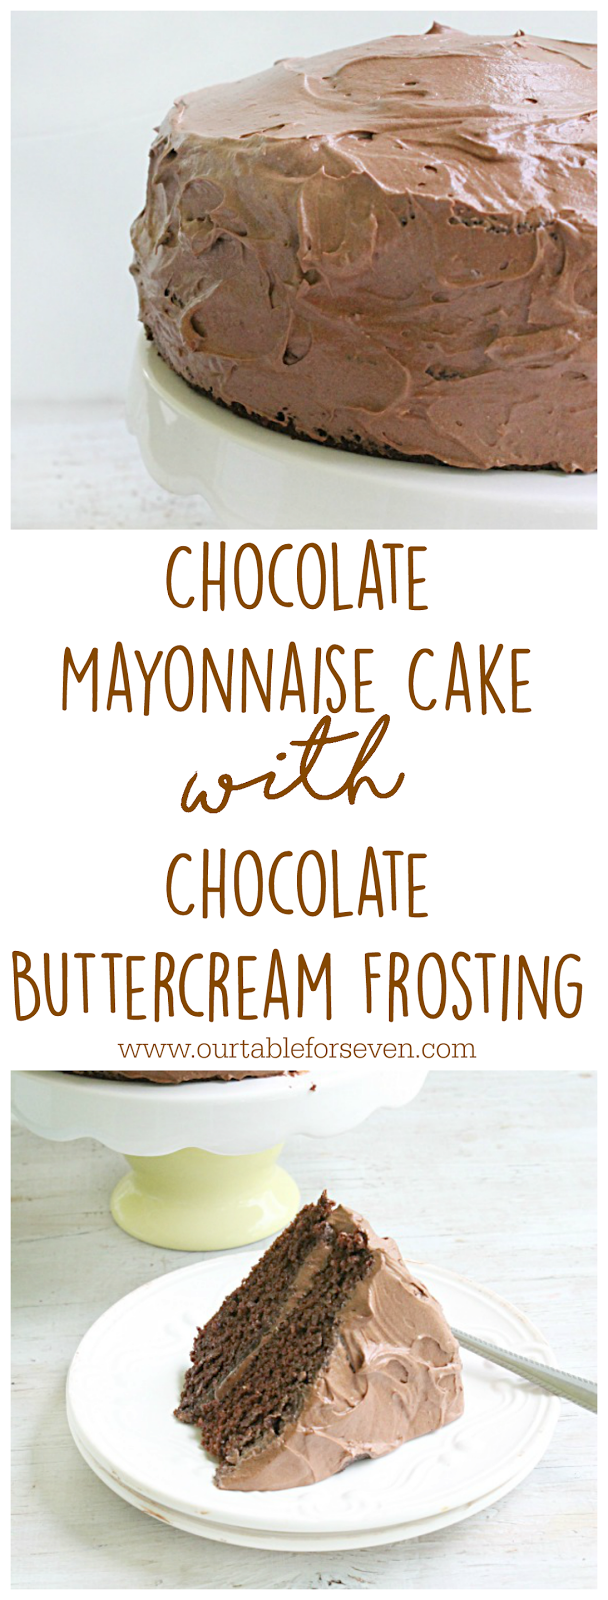 Chocolate Mayonnaise Cake with Chocolate Buttercream Frosting ...